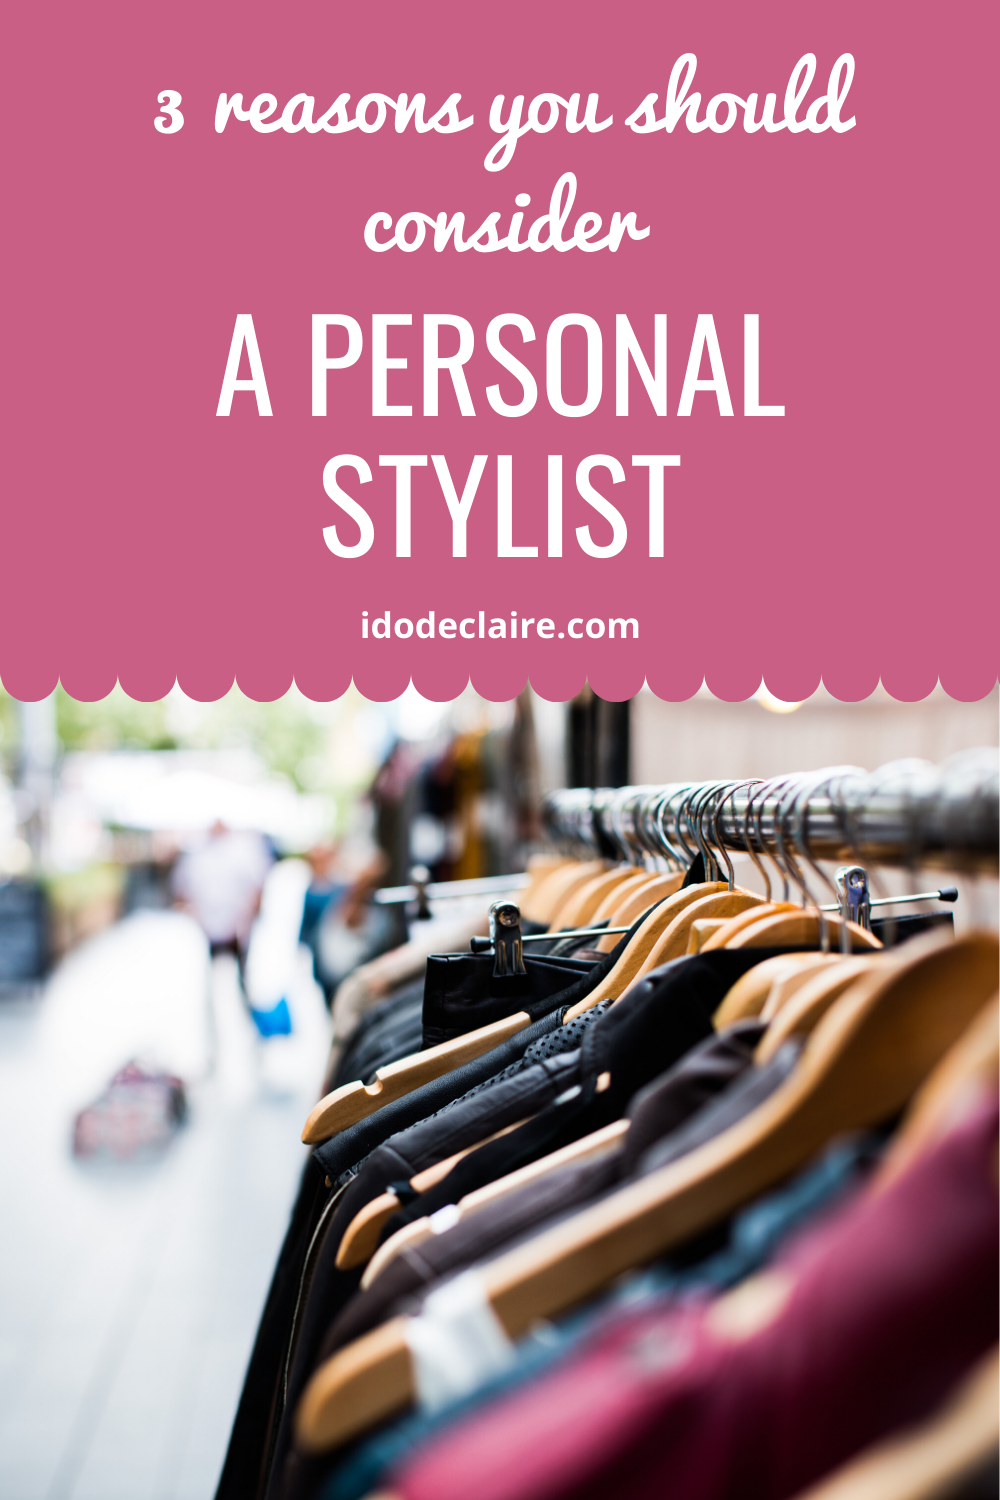 3 Reasons You Should Consider a Personal Stylist